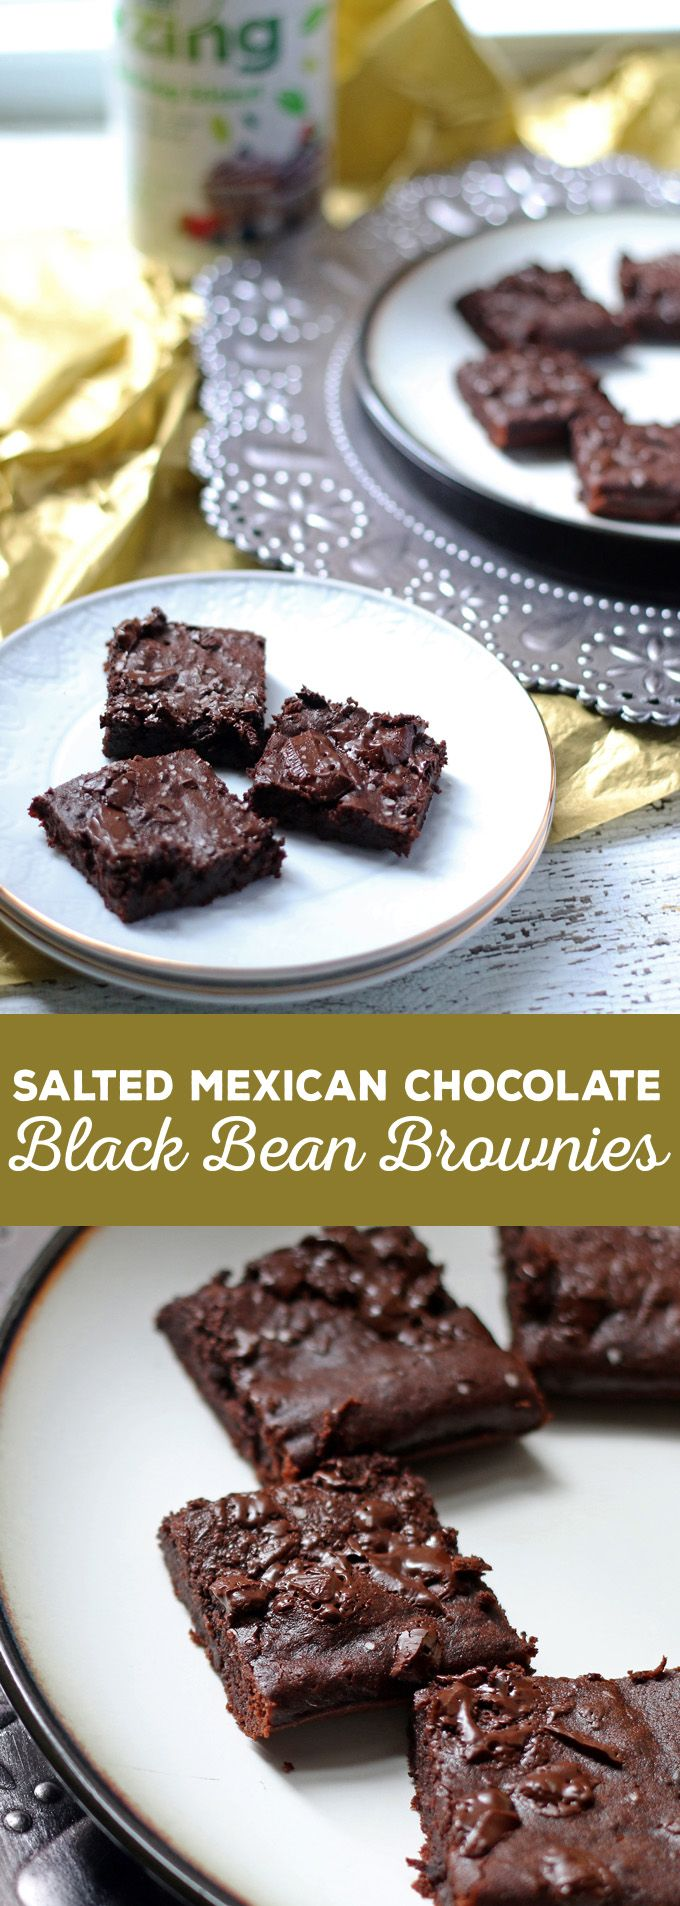 These salted Mexican chocolate black bean brownies are perfect for New Year's Eve celebrations! They will be a delicious slimmed down addition to your holiday party! #ad #ZingBakingHoliday @zingstevia | honeyandbirch.com